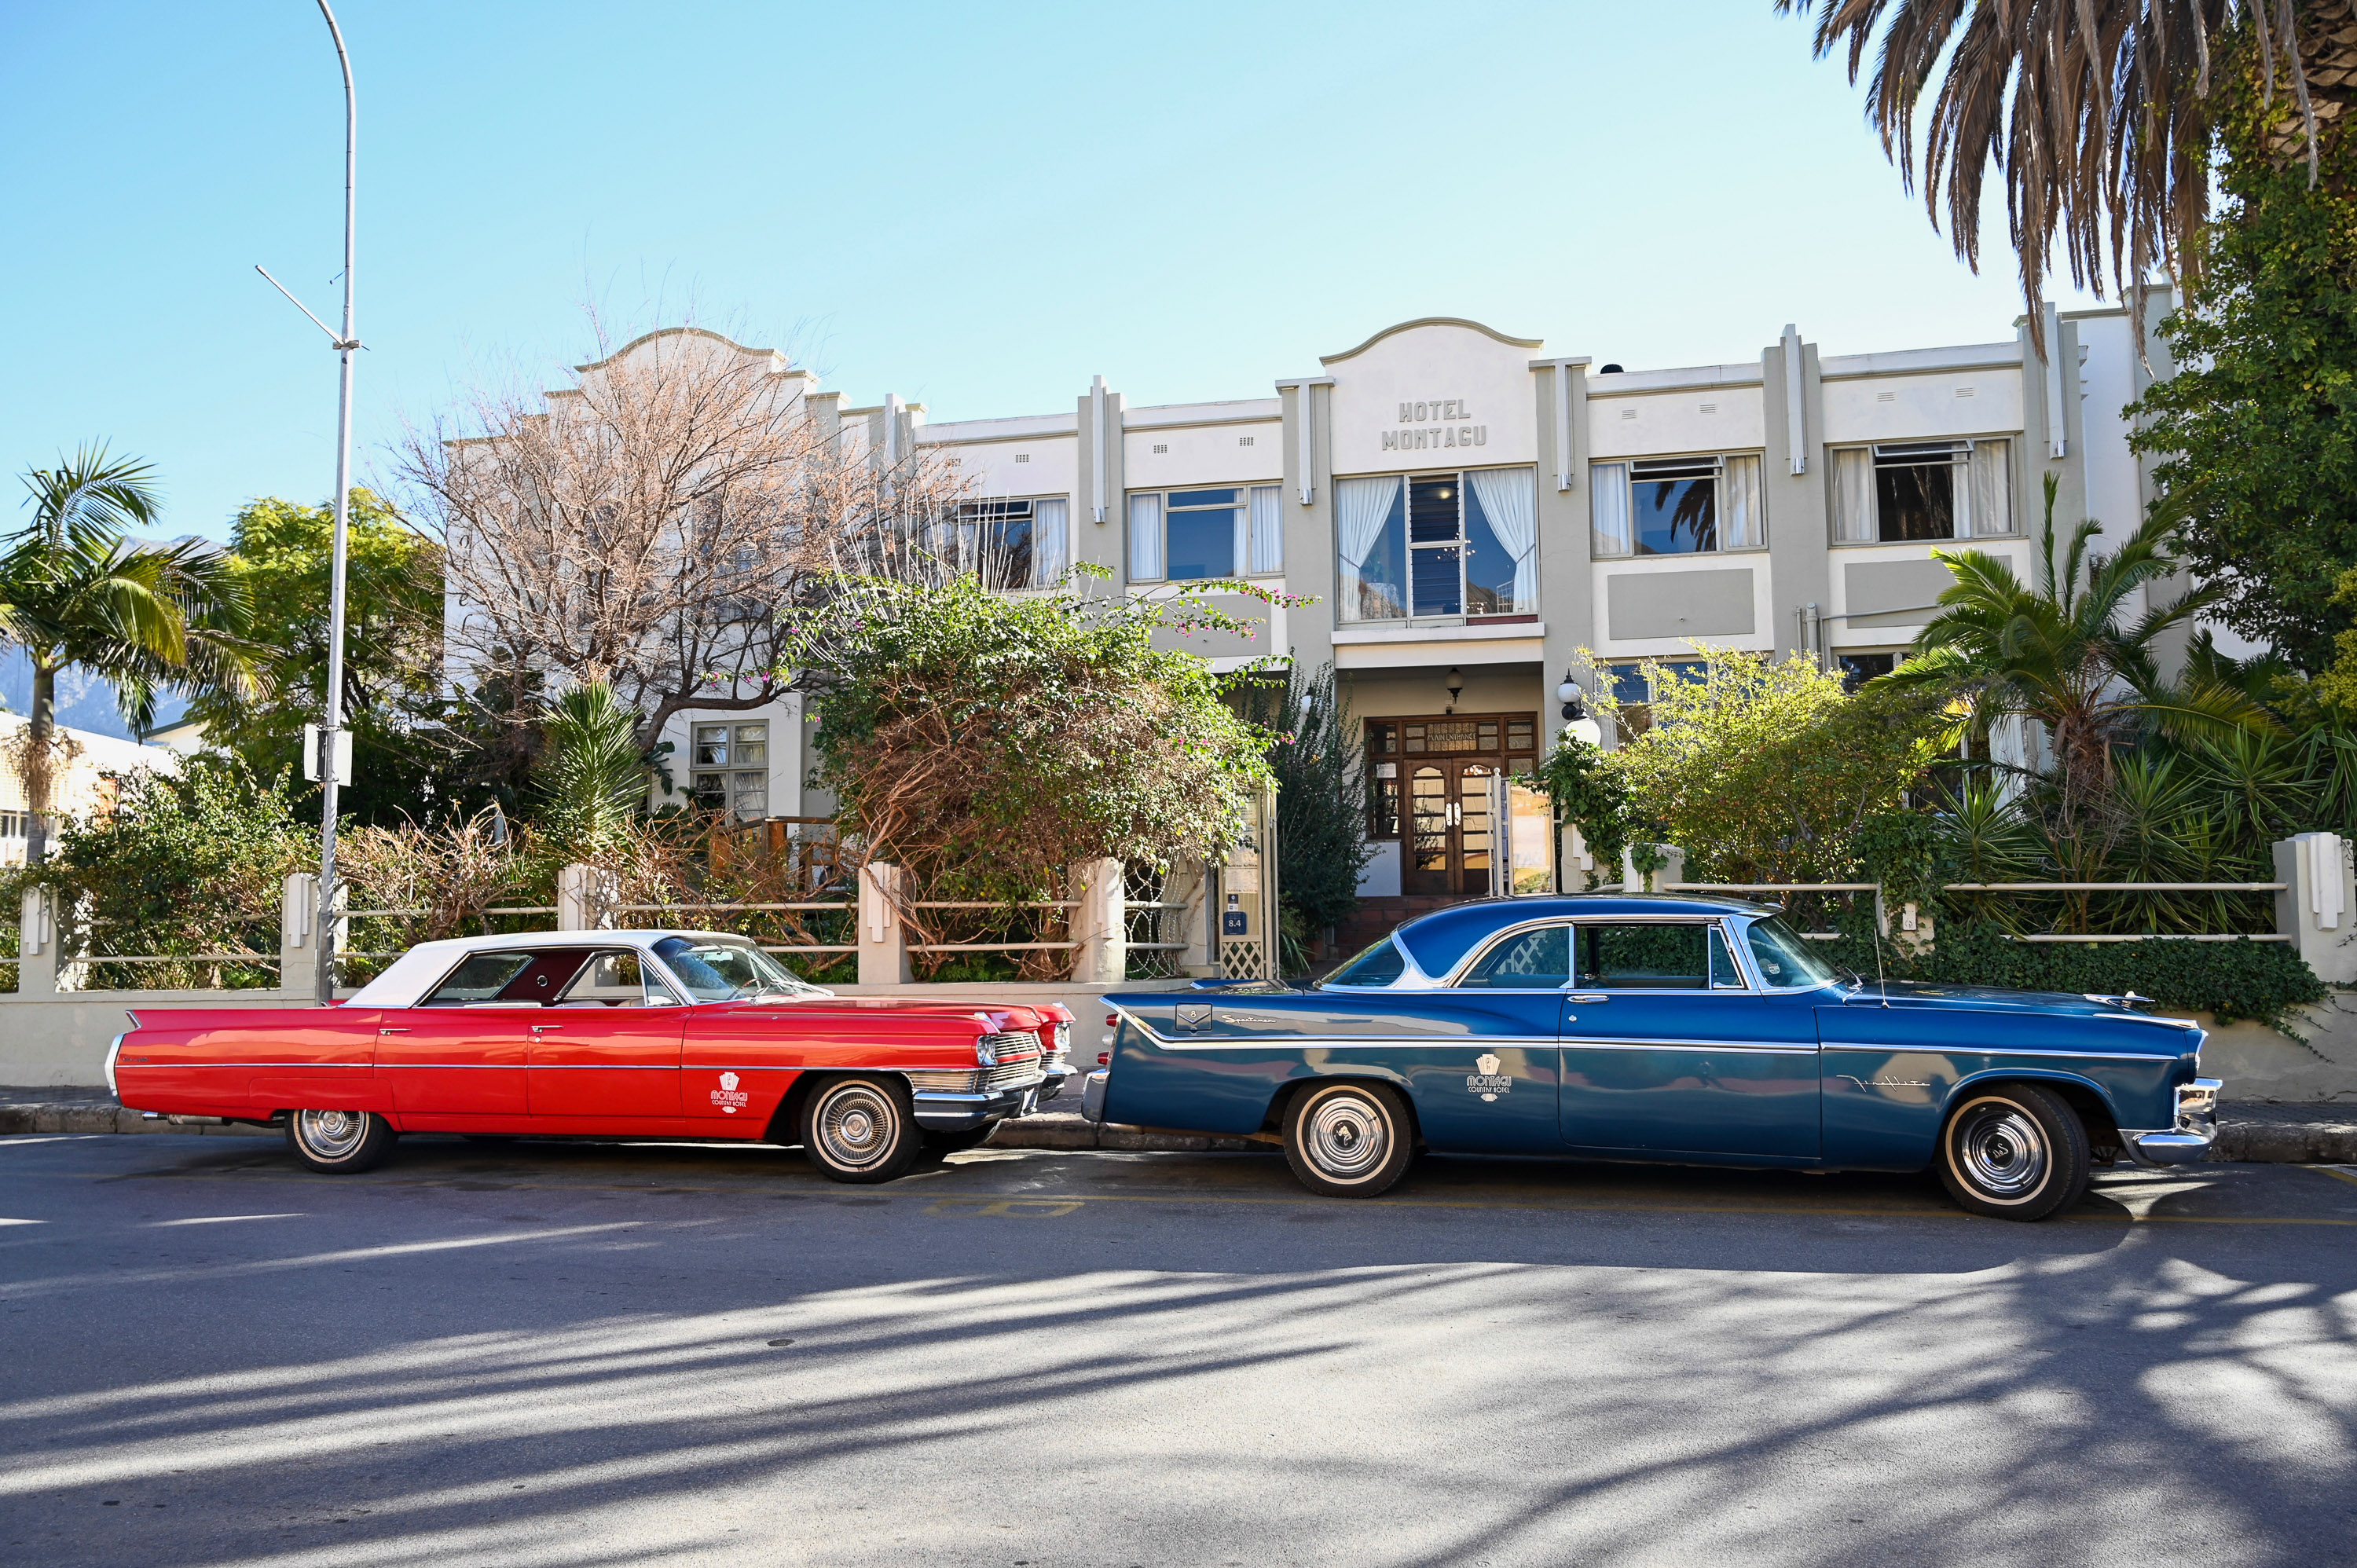 THE MONTAGU COUNTRY HOTEL